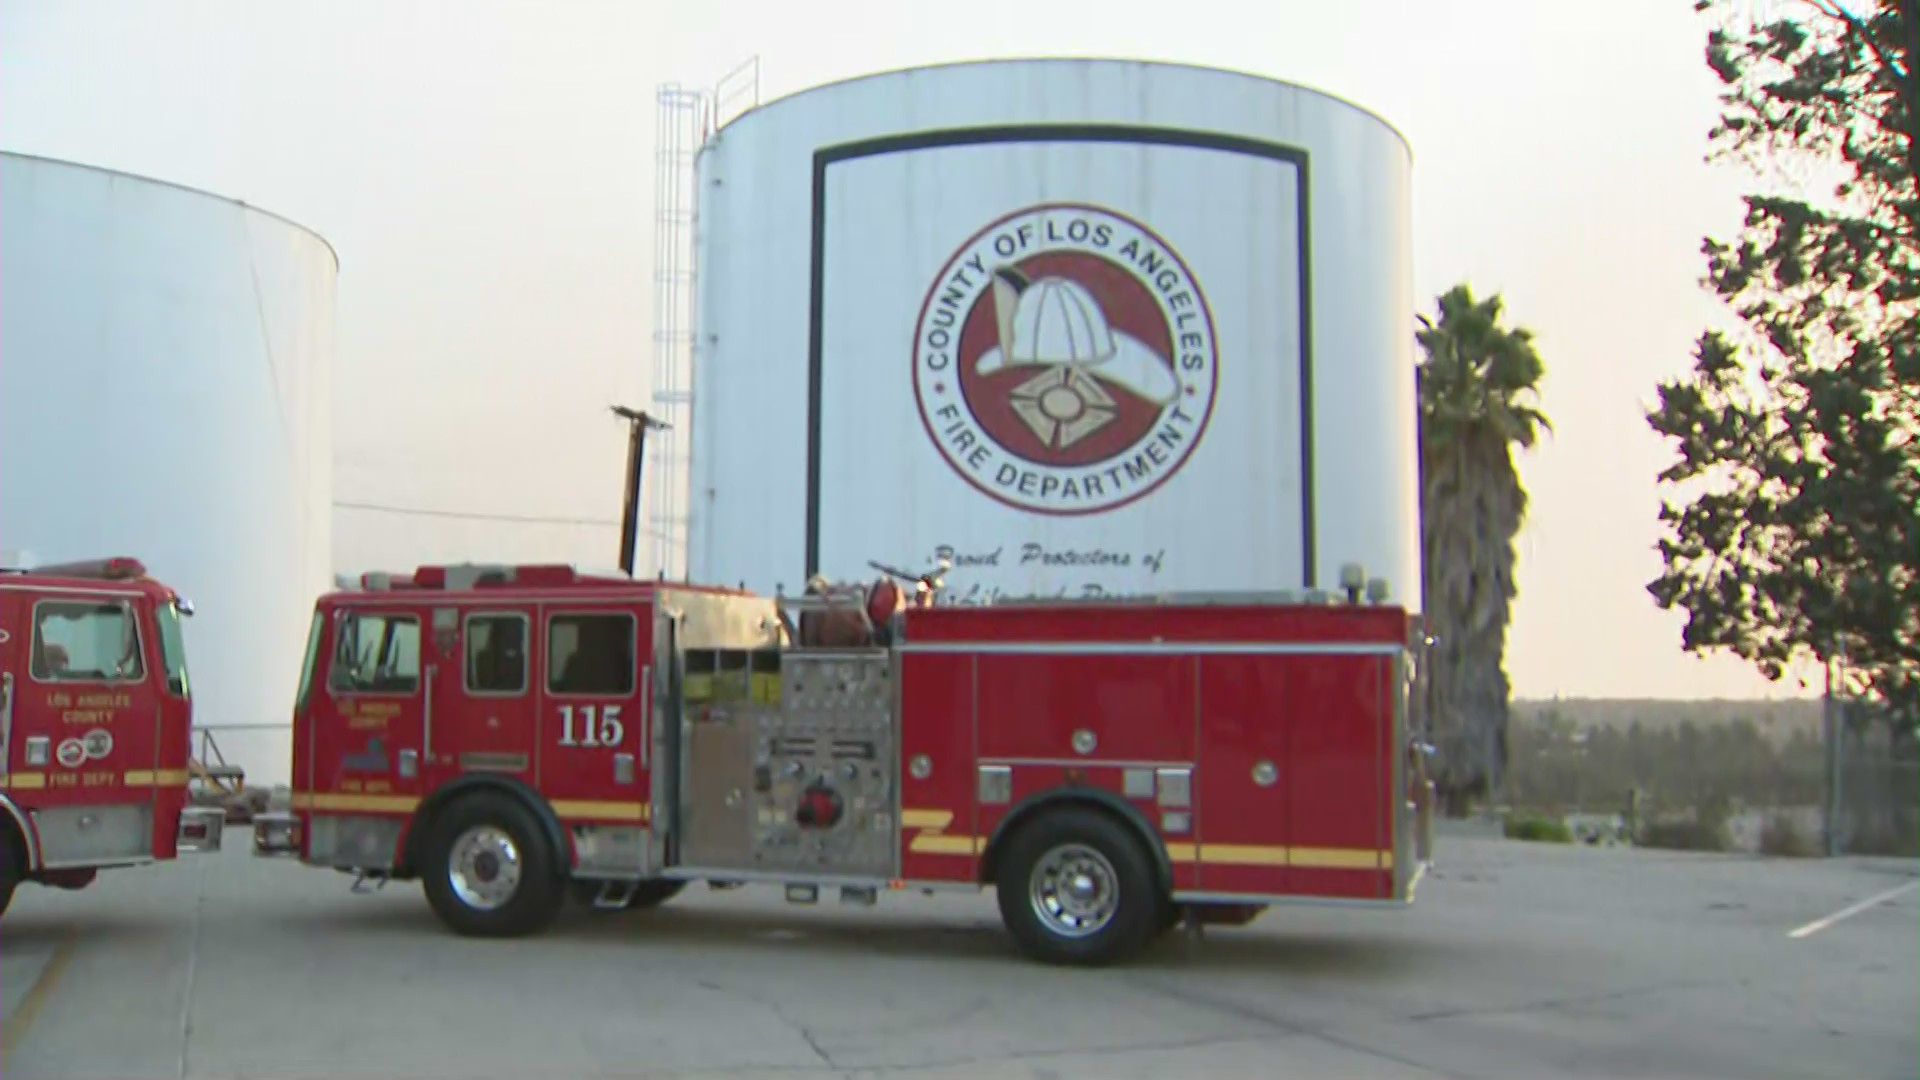 Are You F.i.r.e Ready? The New Los Angeles County Fire